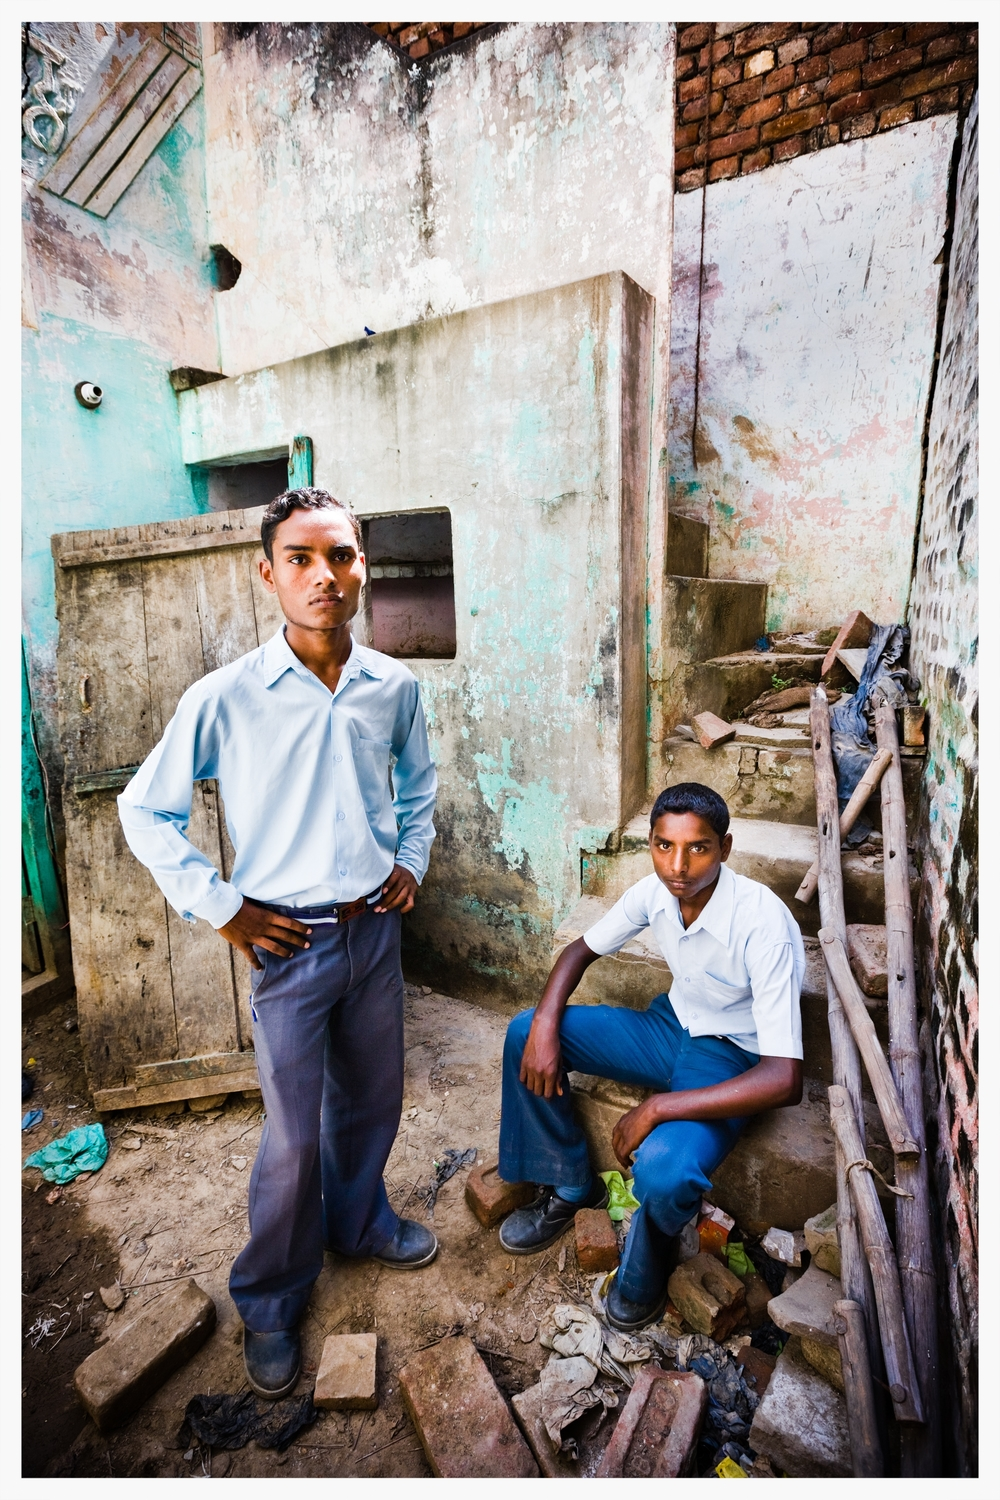 Indian Dalits, Being Untouchable. Photo: © Marcus Perkins